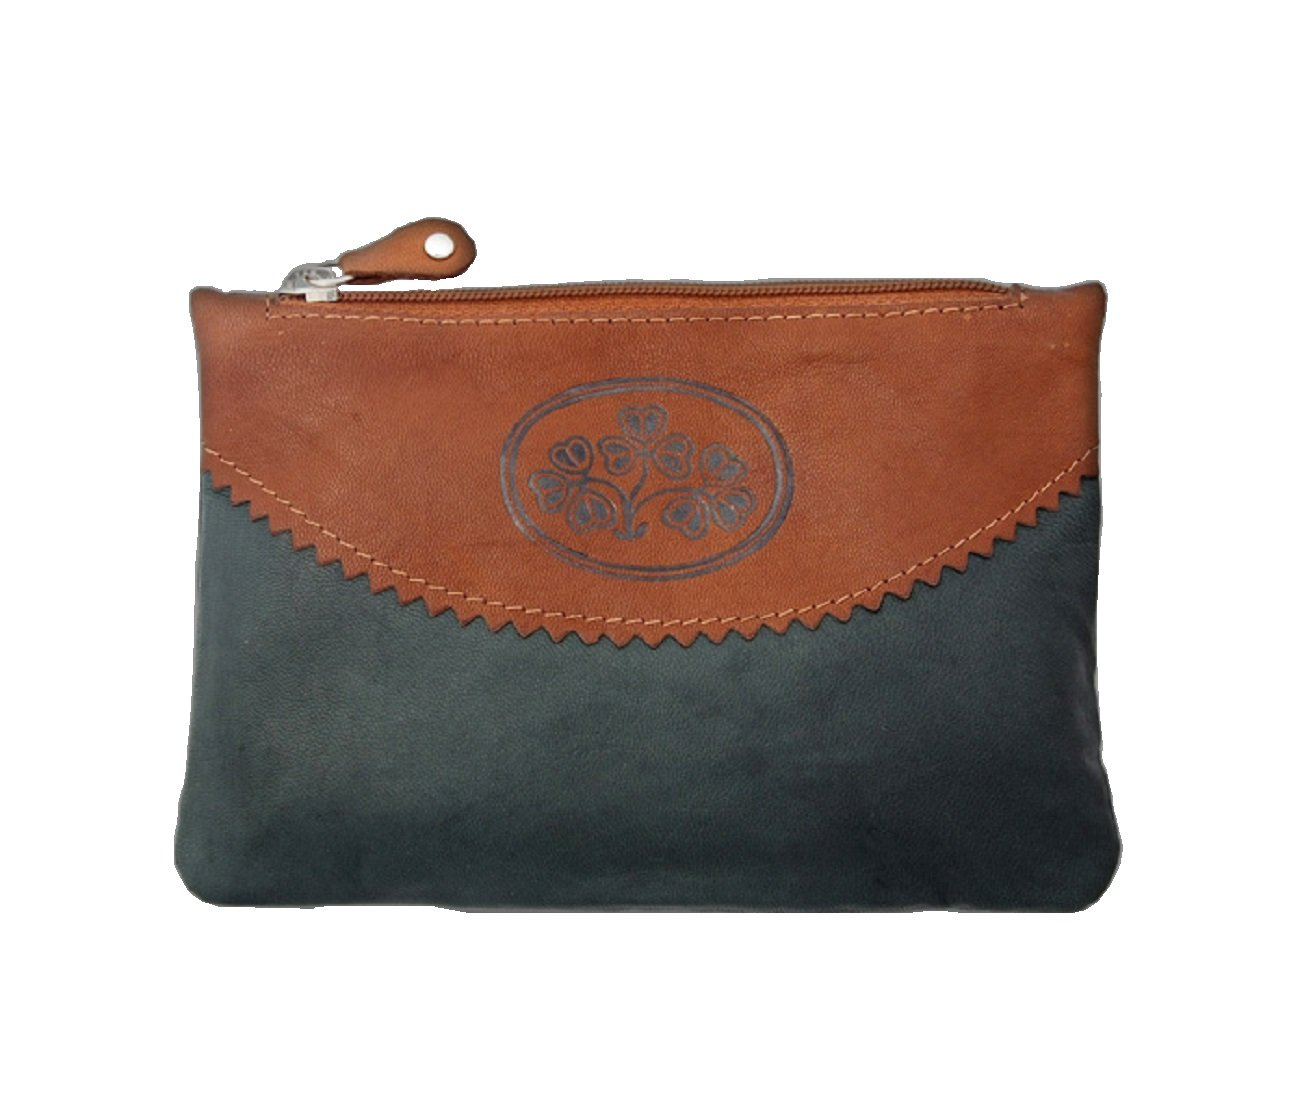 Leather Wallet Clutch Shamrock Design Made in Ireland